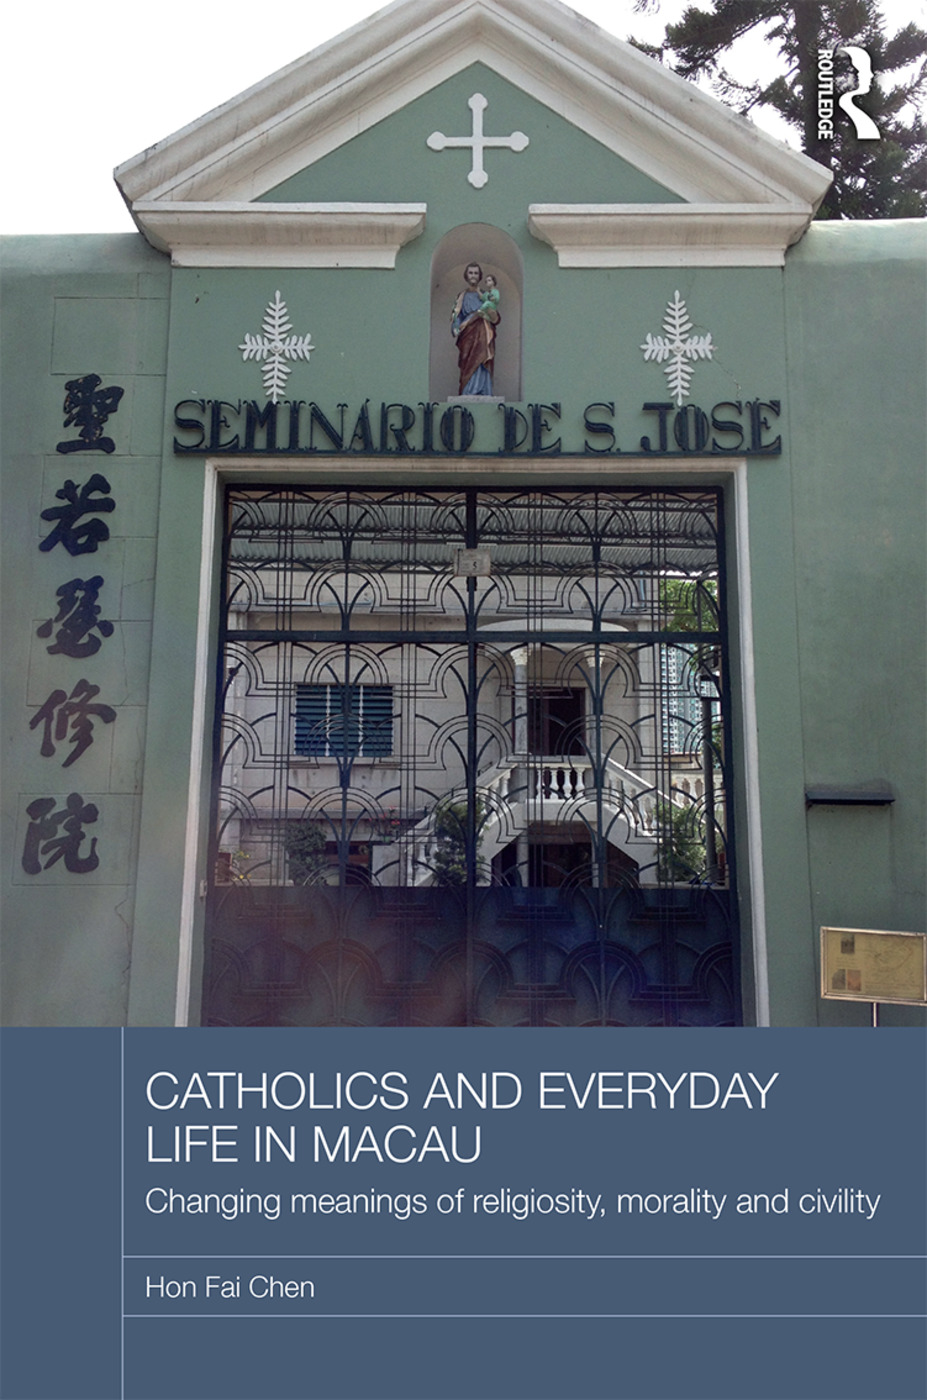 Catholics and Everyday Life in Macau: Changing Meanings of Religiosity, Morality and Civility book cover